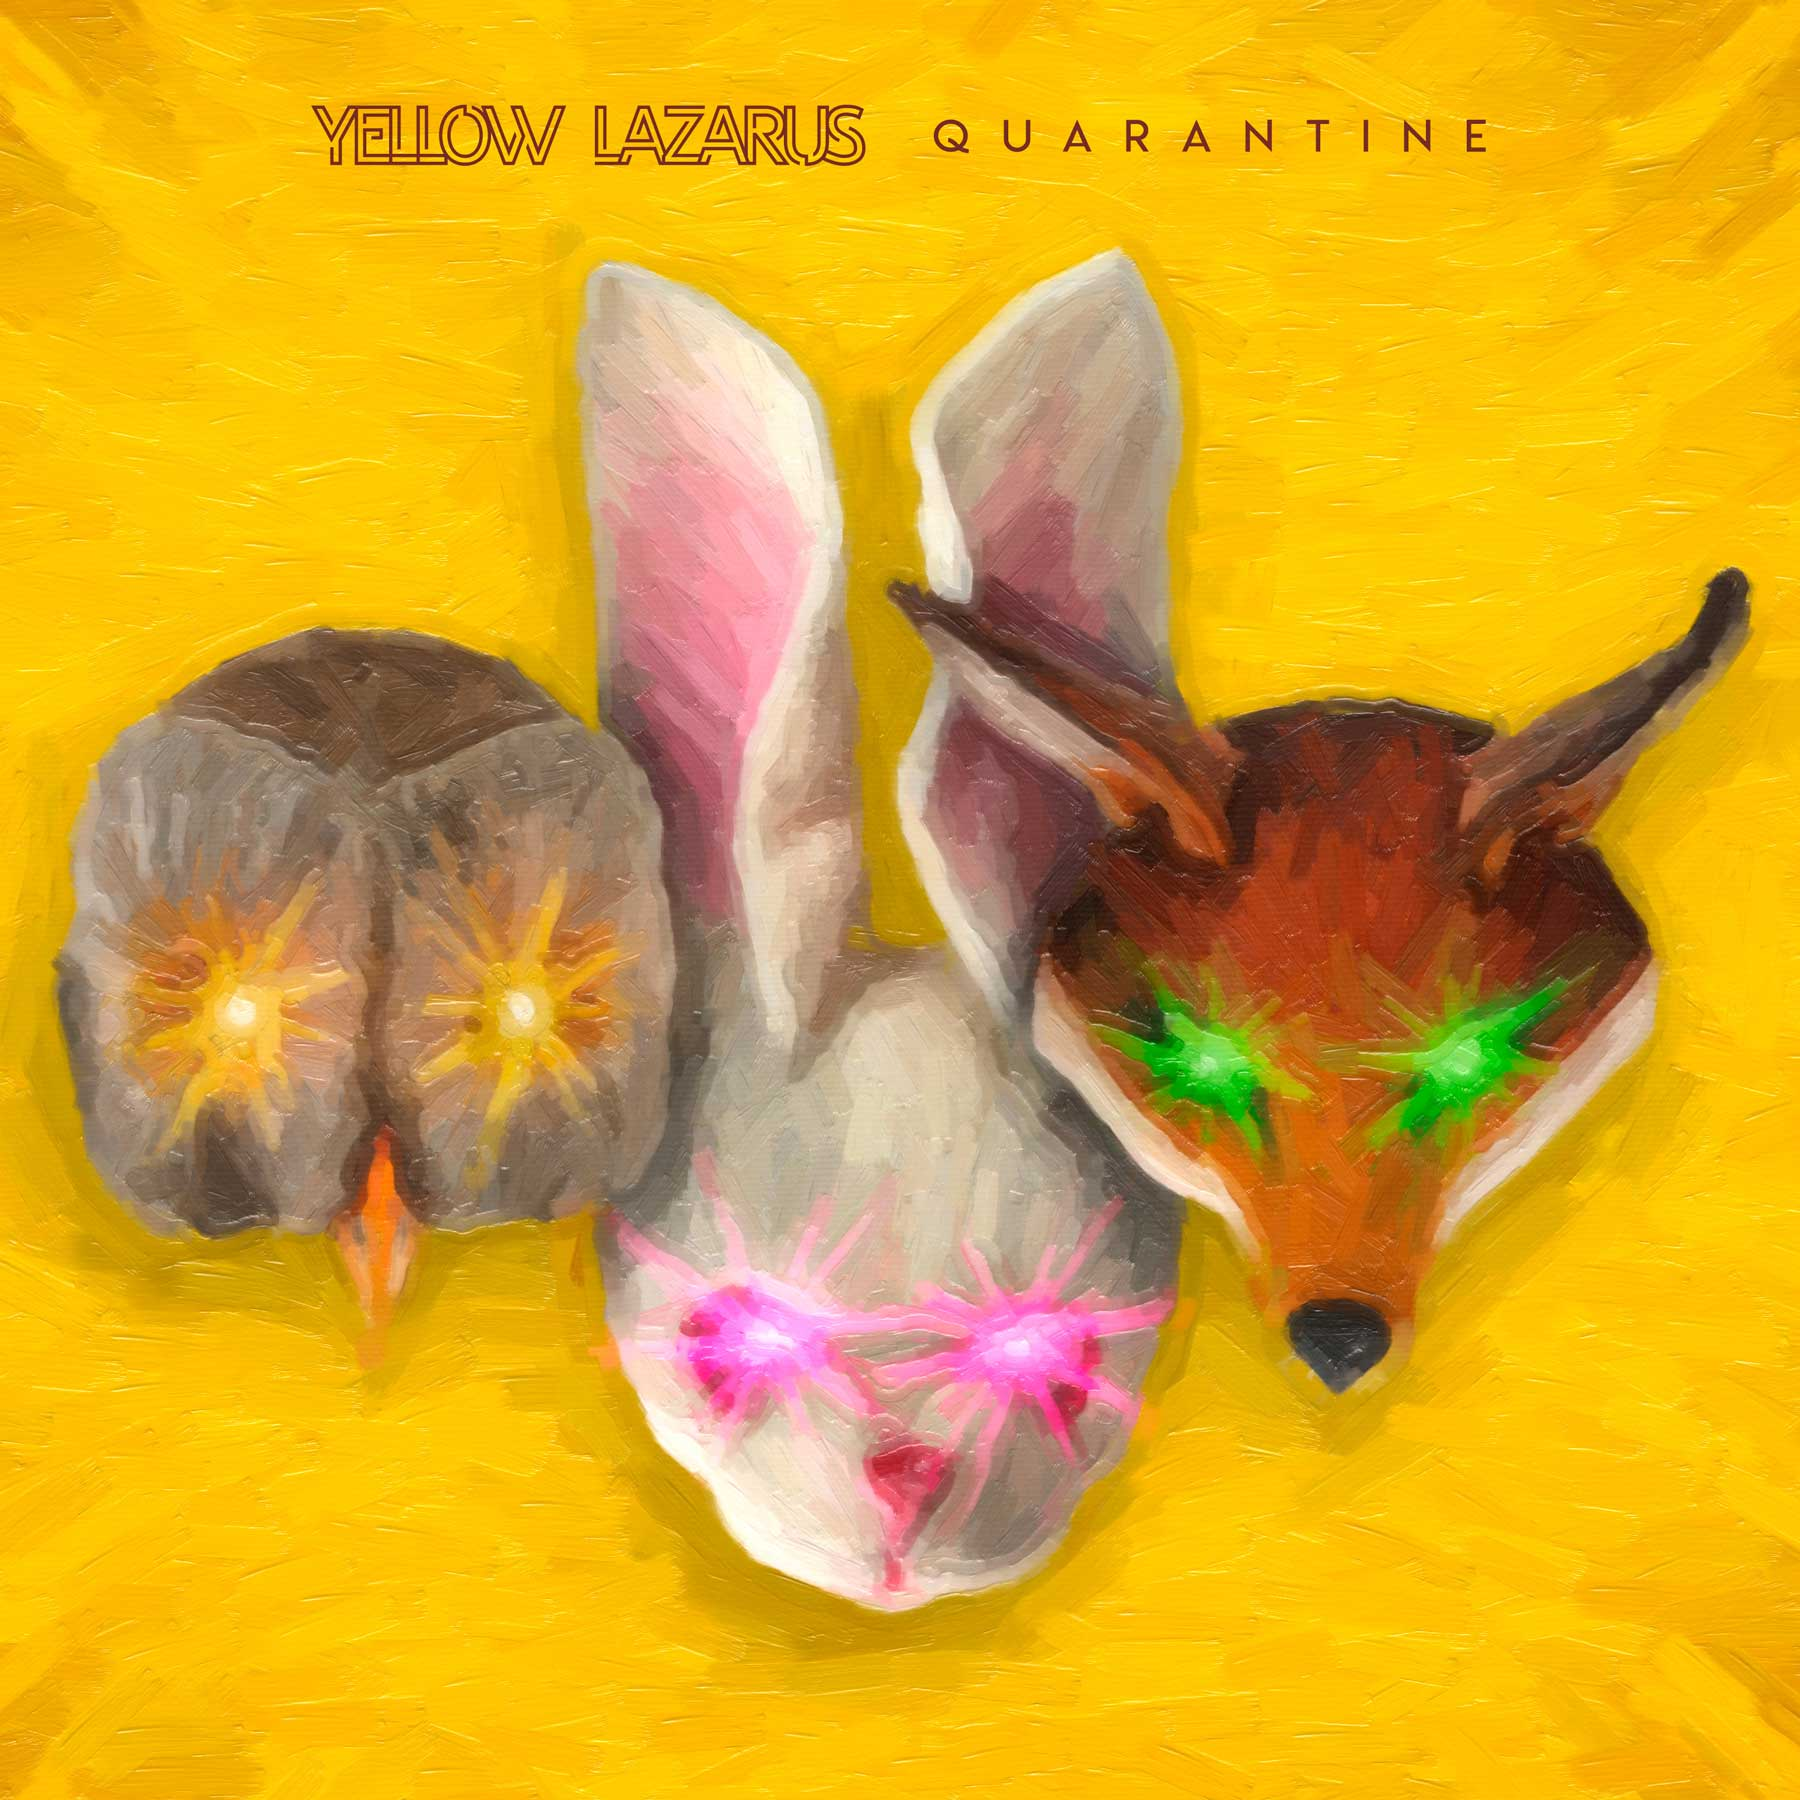 Yellow Lazarus - Quarantine - Yellow Lazarus - Quarantine